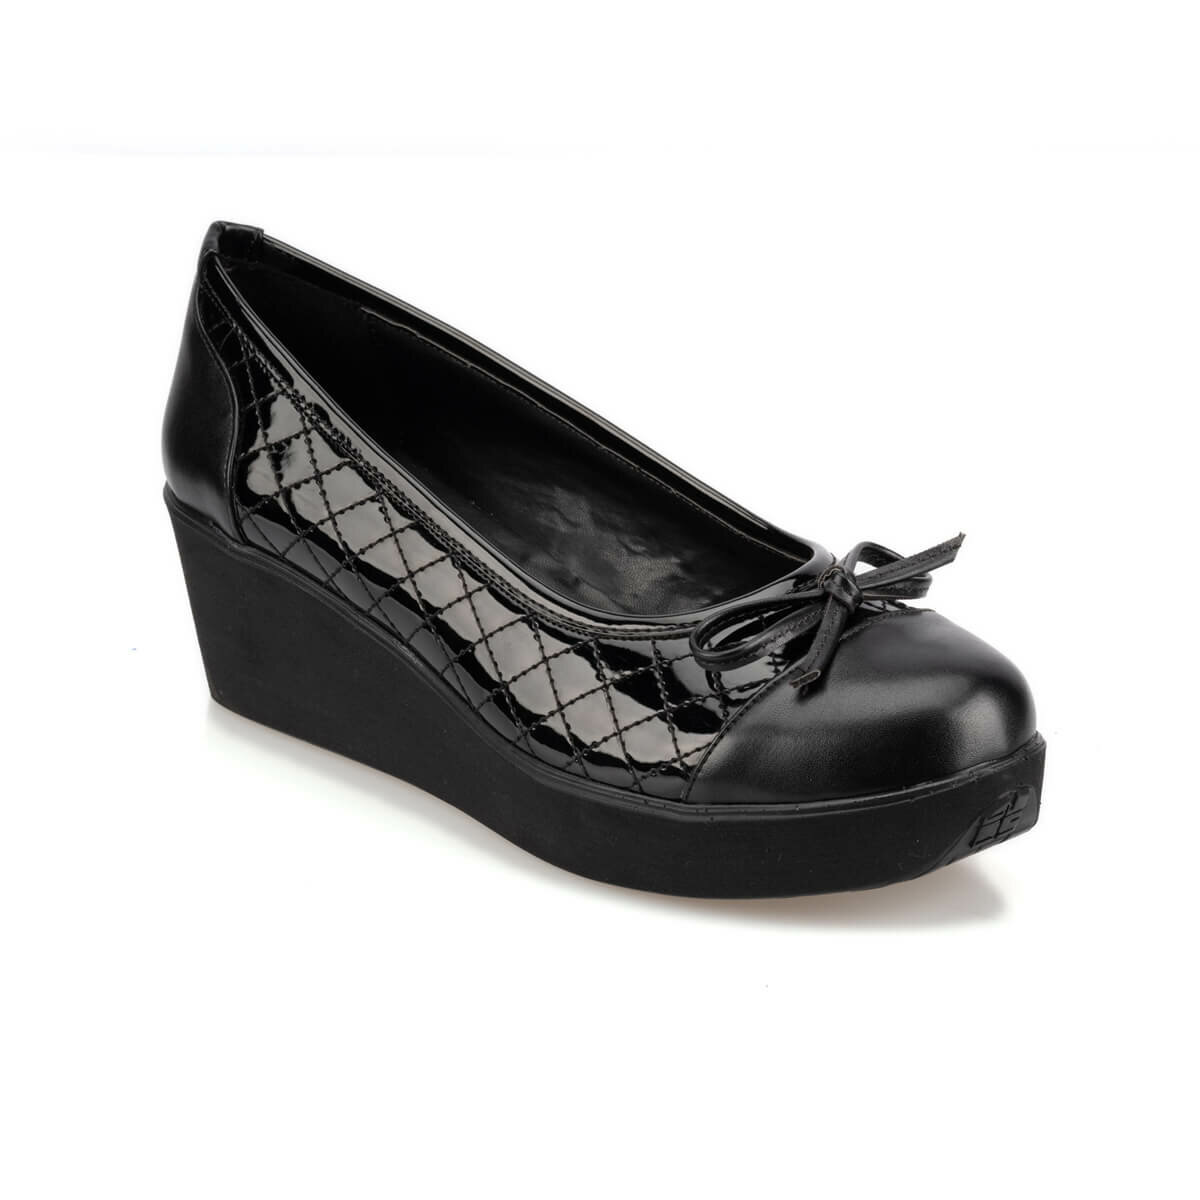 FLO 92.314244.Z Black Women Gova Shoes Polaris